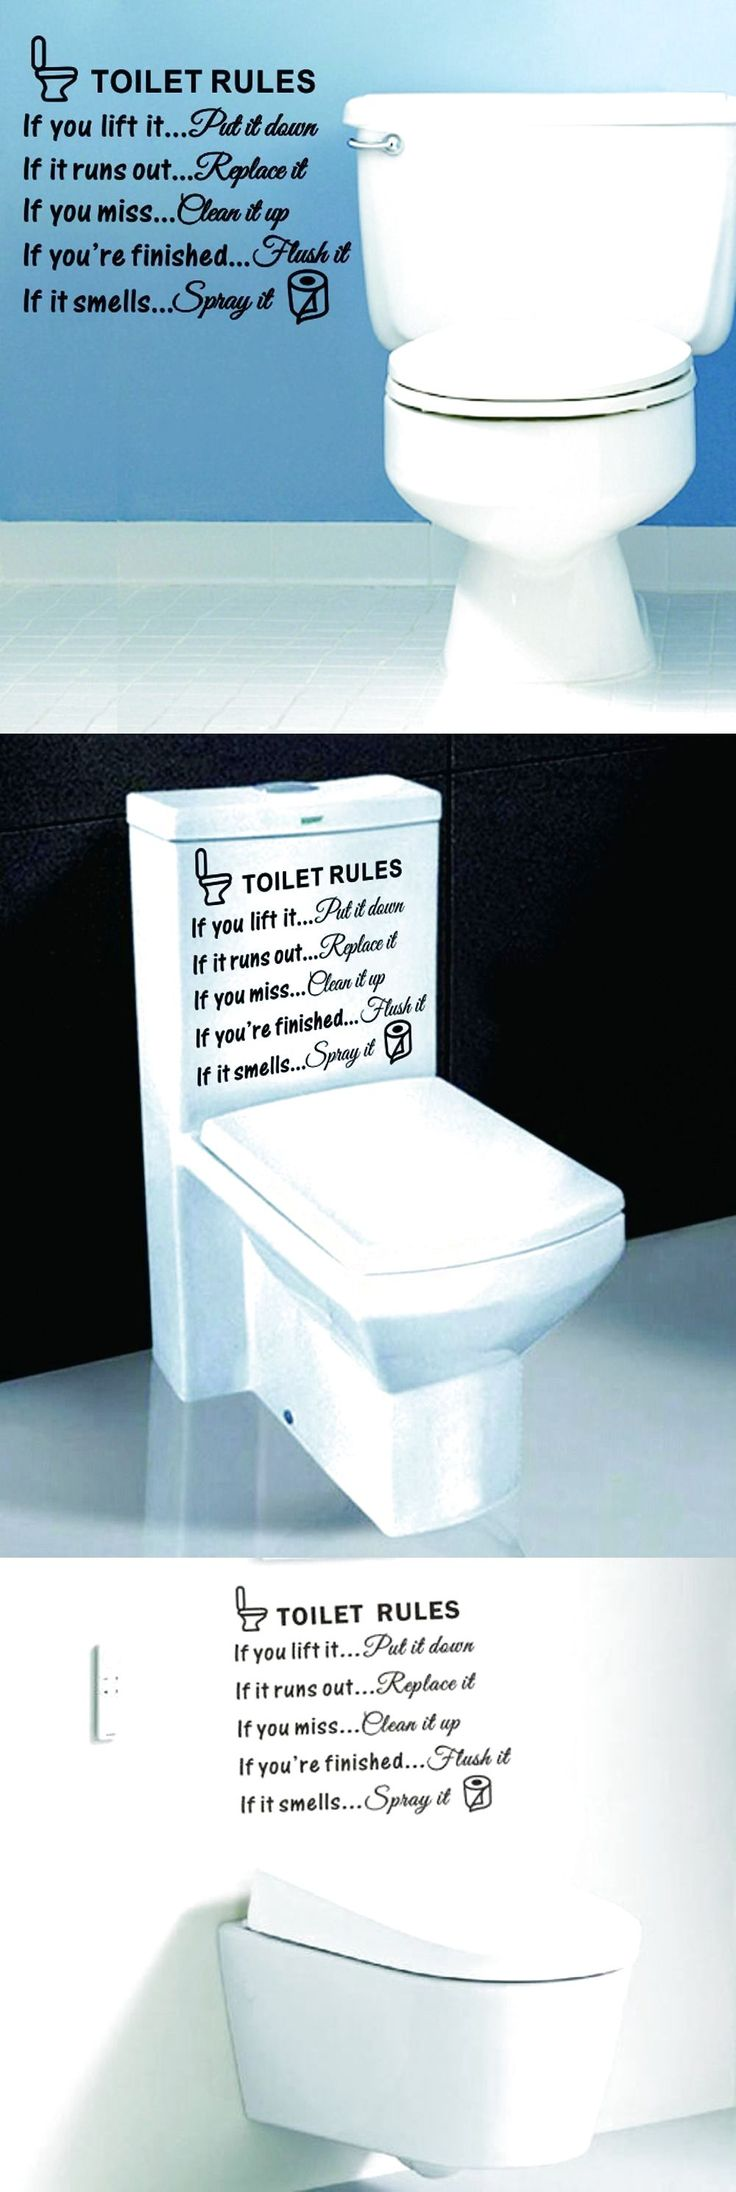 Toilet Rules Quote  Removable Wall Sticker PVC Art Decals Bathroom Home Decor US $3.39